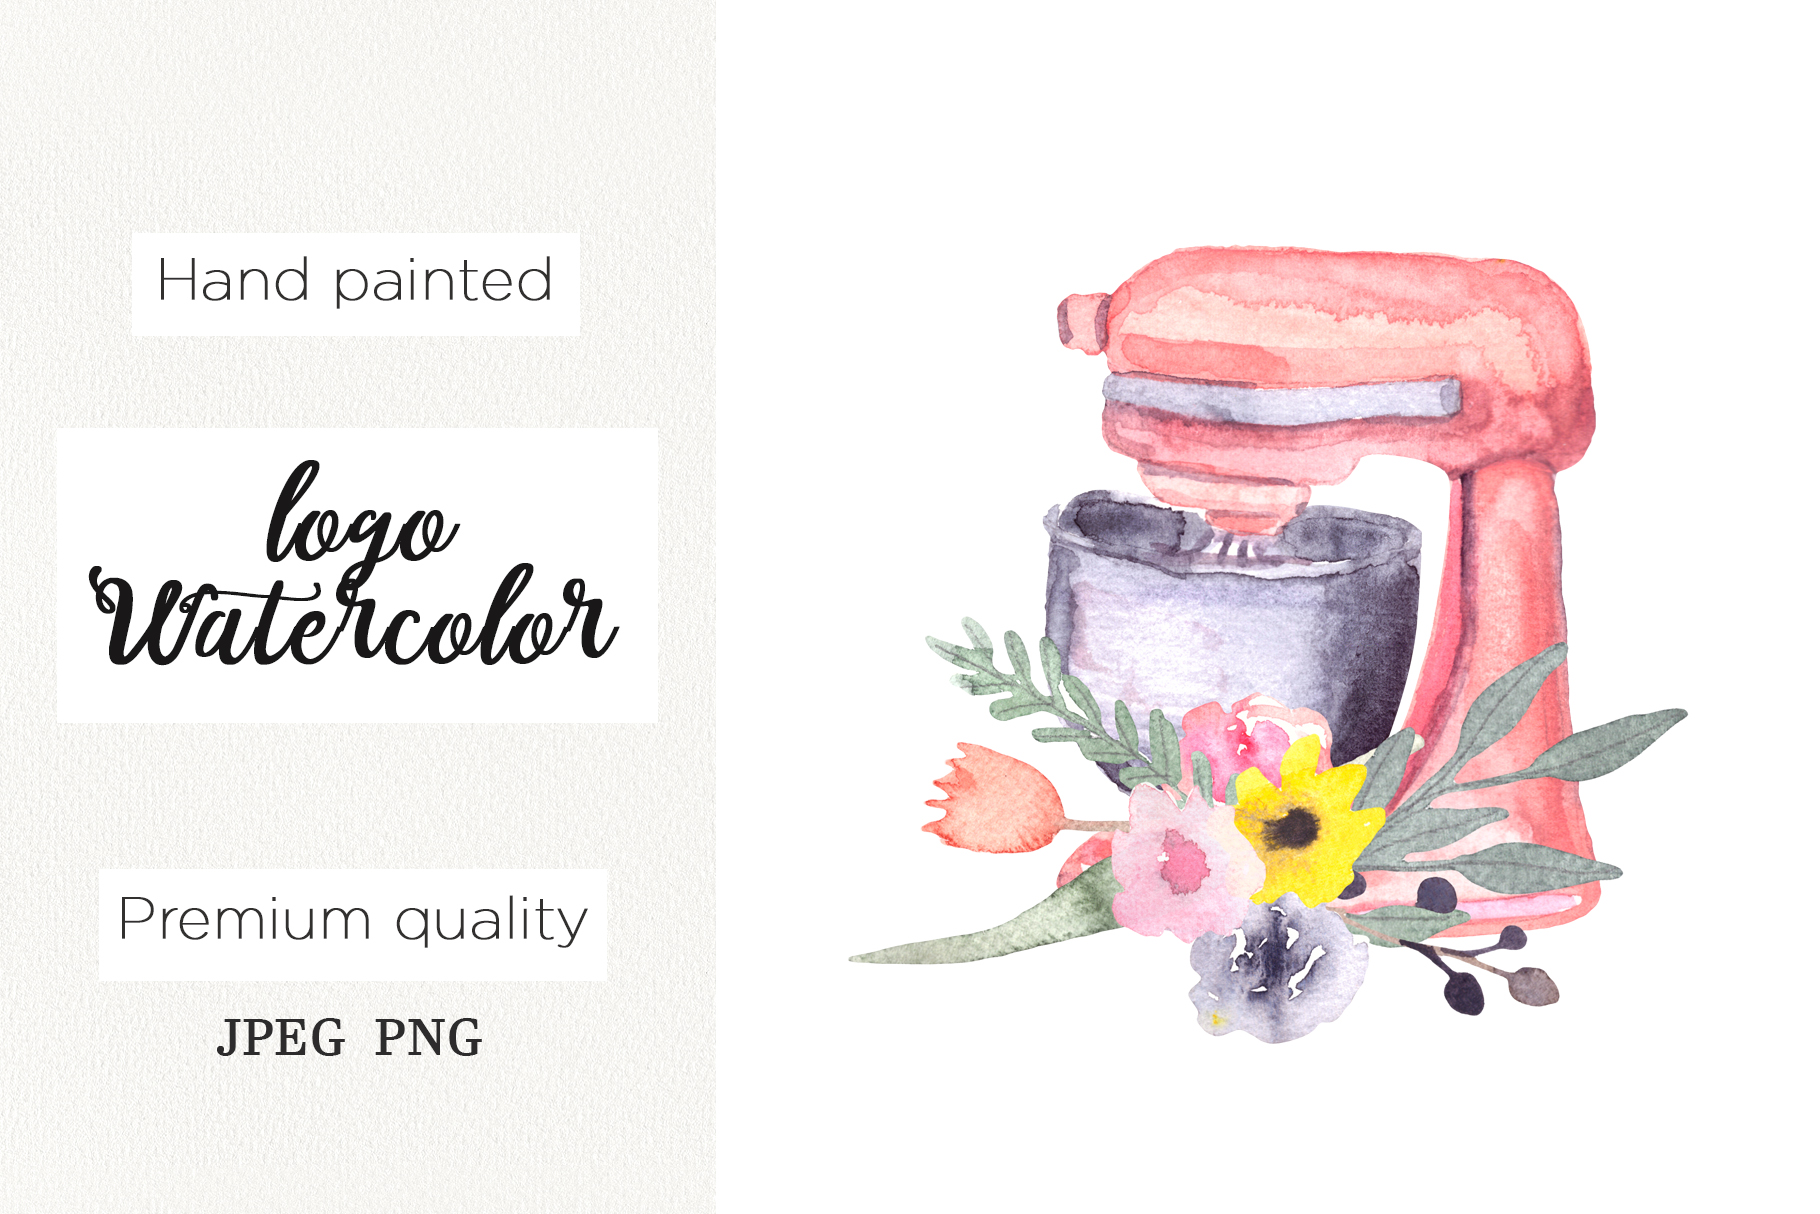 Download Free Watercolor Logo For Bakery Mixer Floral Graphic By Marisid11 for Cricut Explore, Silhouette and other cutting machines.